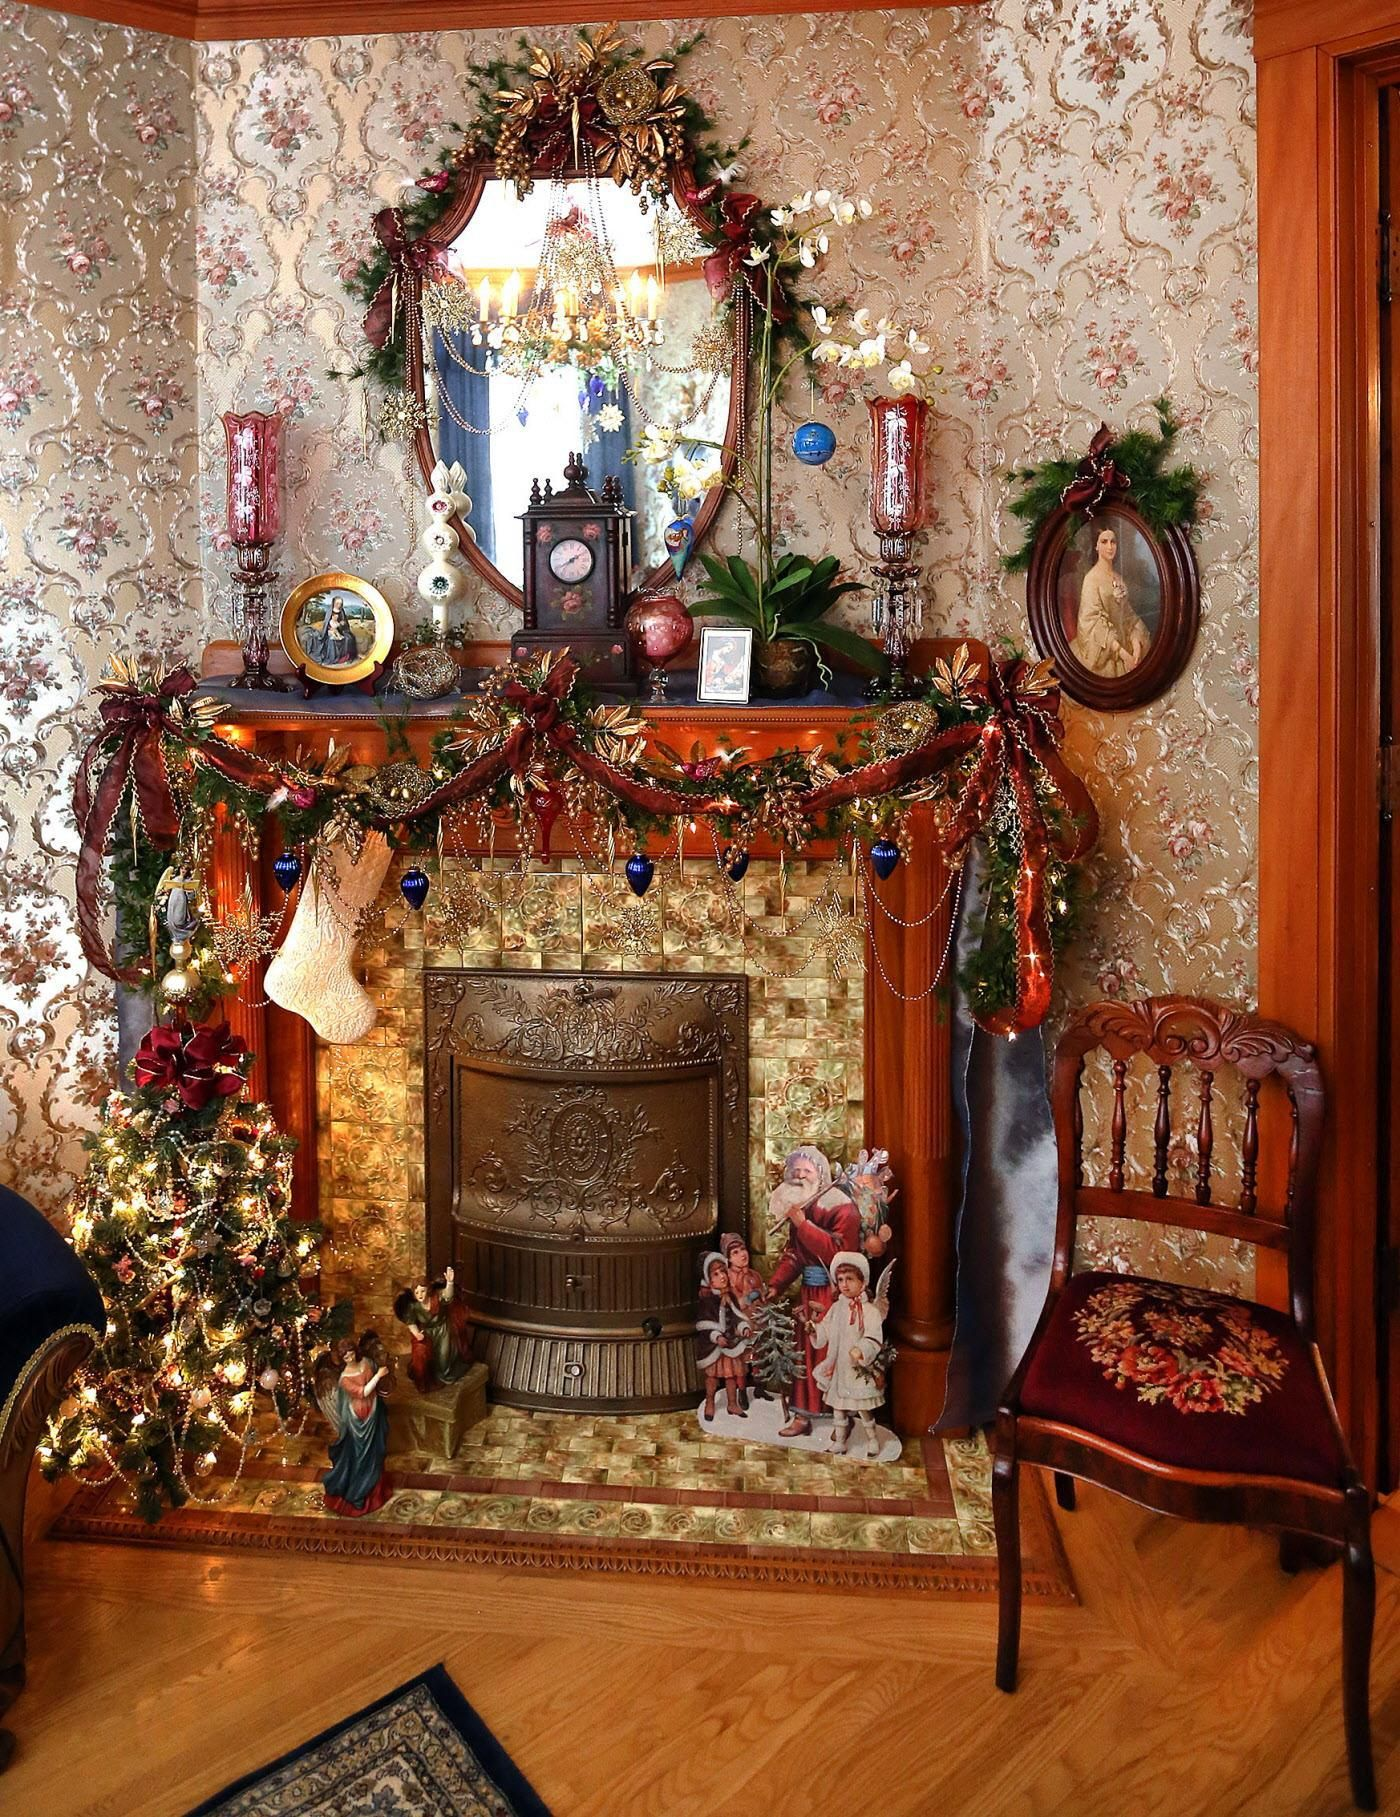 Beau Antiques Abound In This Victorian Homeu0027s Christmas Decor_Milwaukee Journal  Sentinel